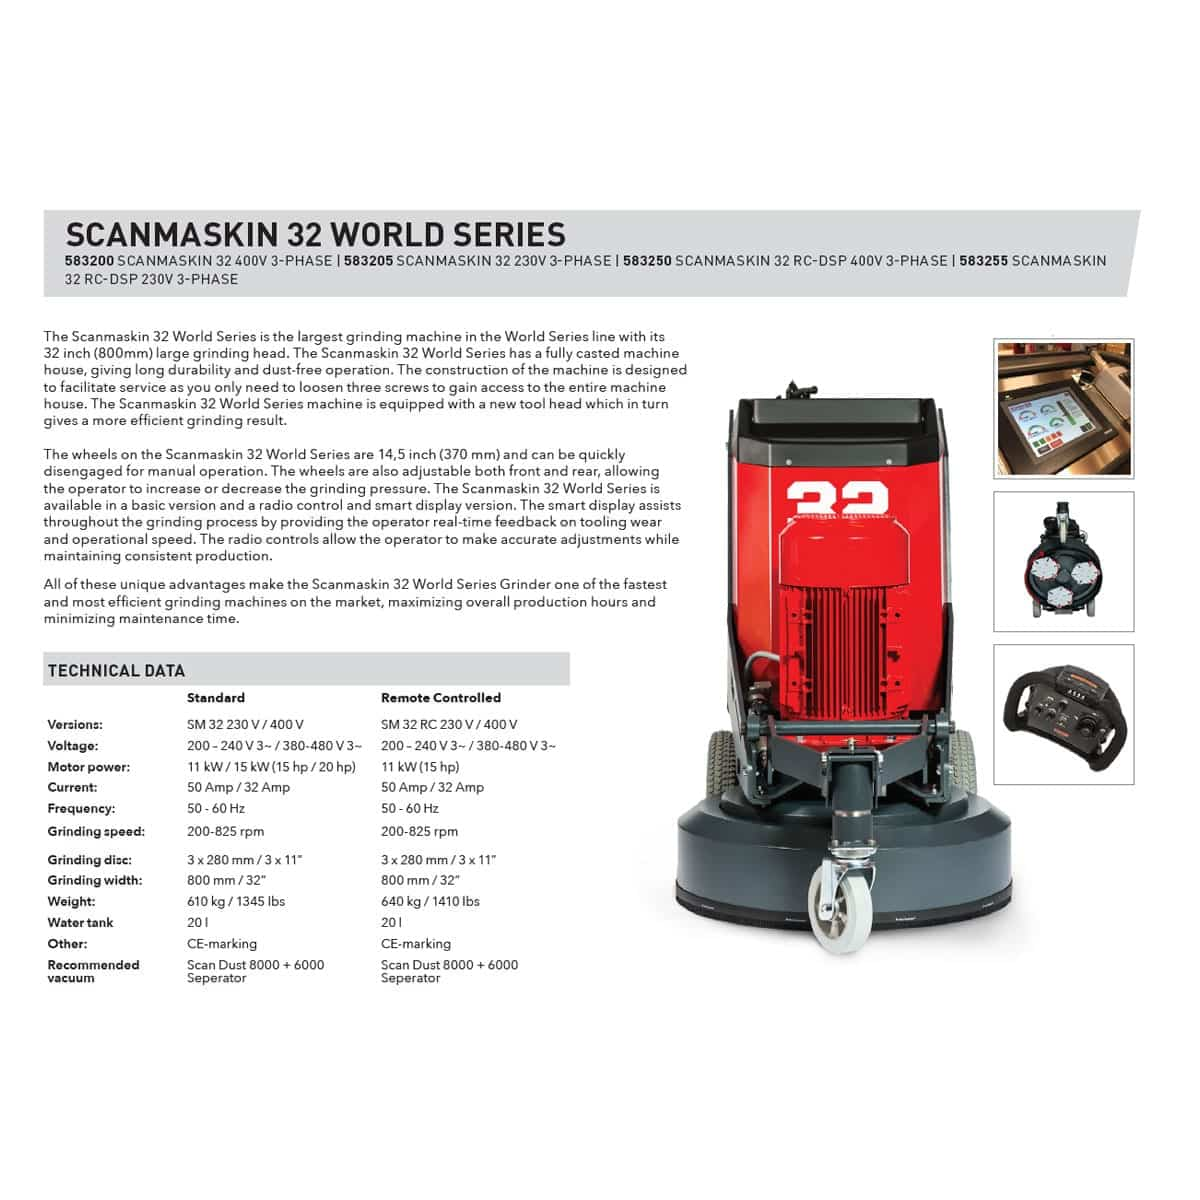 "Sell Sheet Scanmaskin 32"" Concrete Grinder World Series 32 Turning Point Supply Charlotte and Raleigh North Carolina Store Locations"